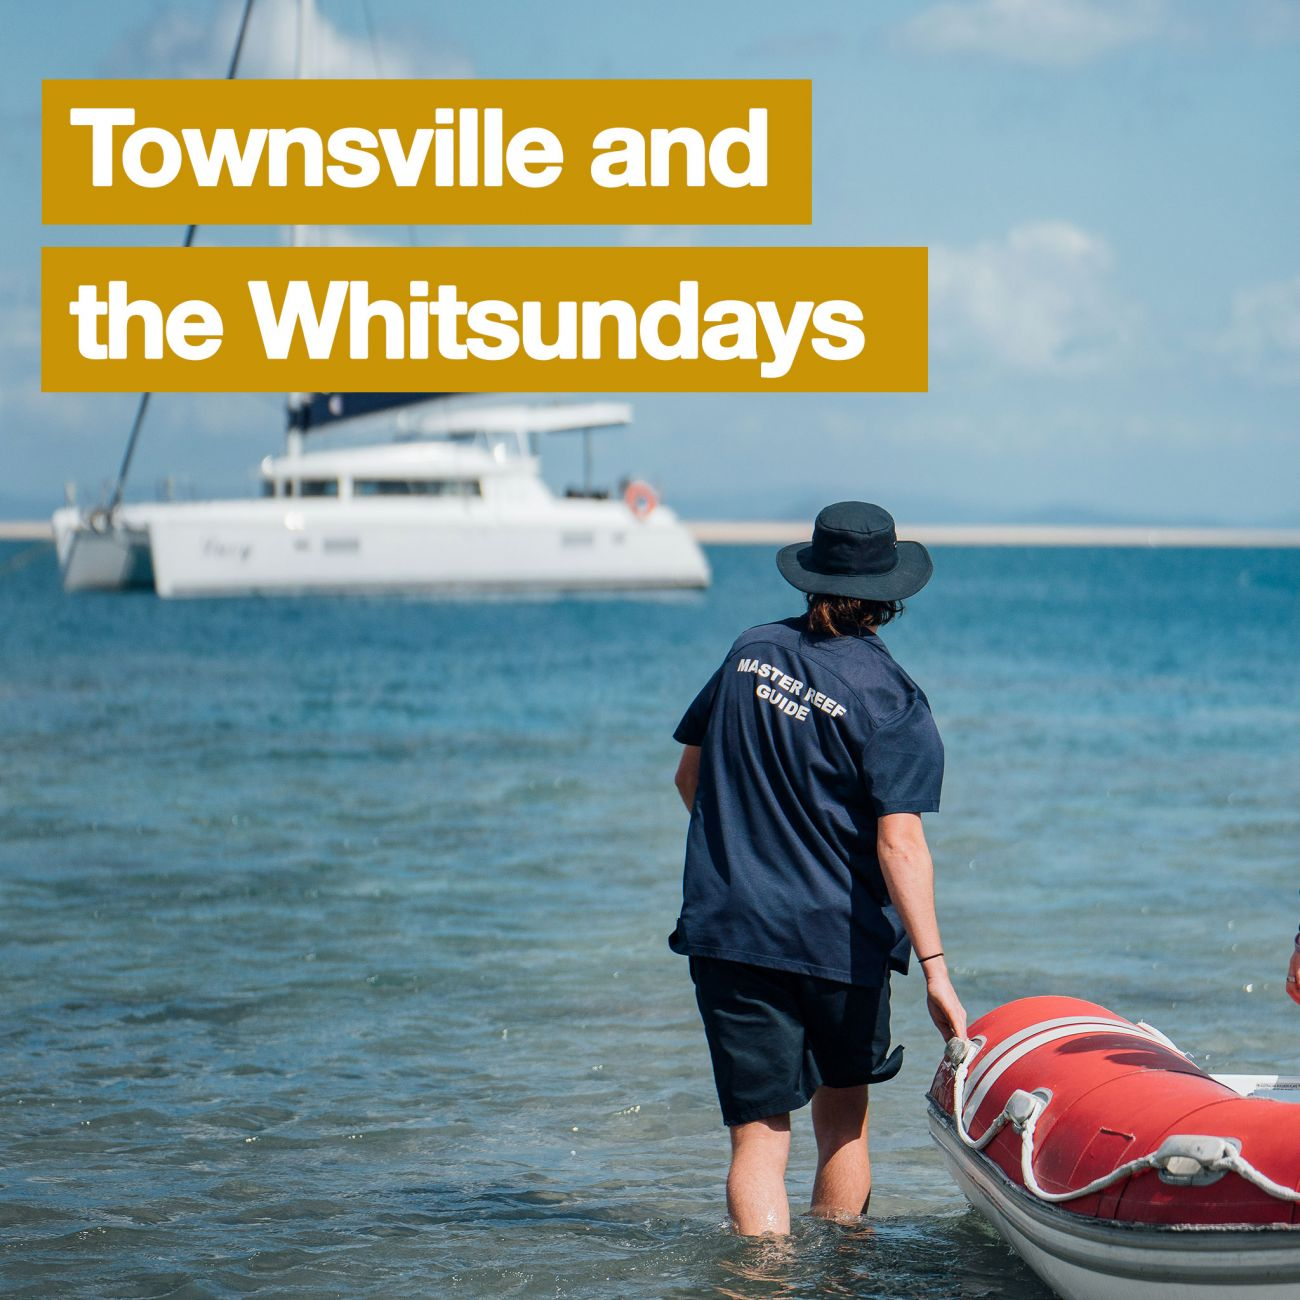 Whitsundays and Townsville region